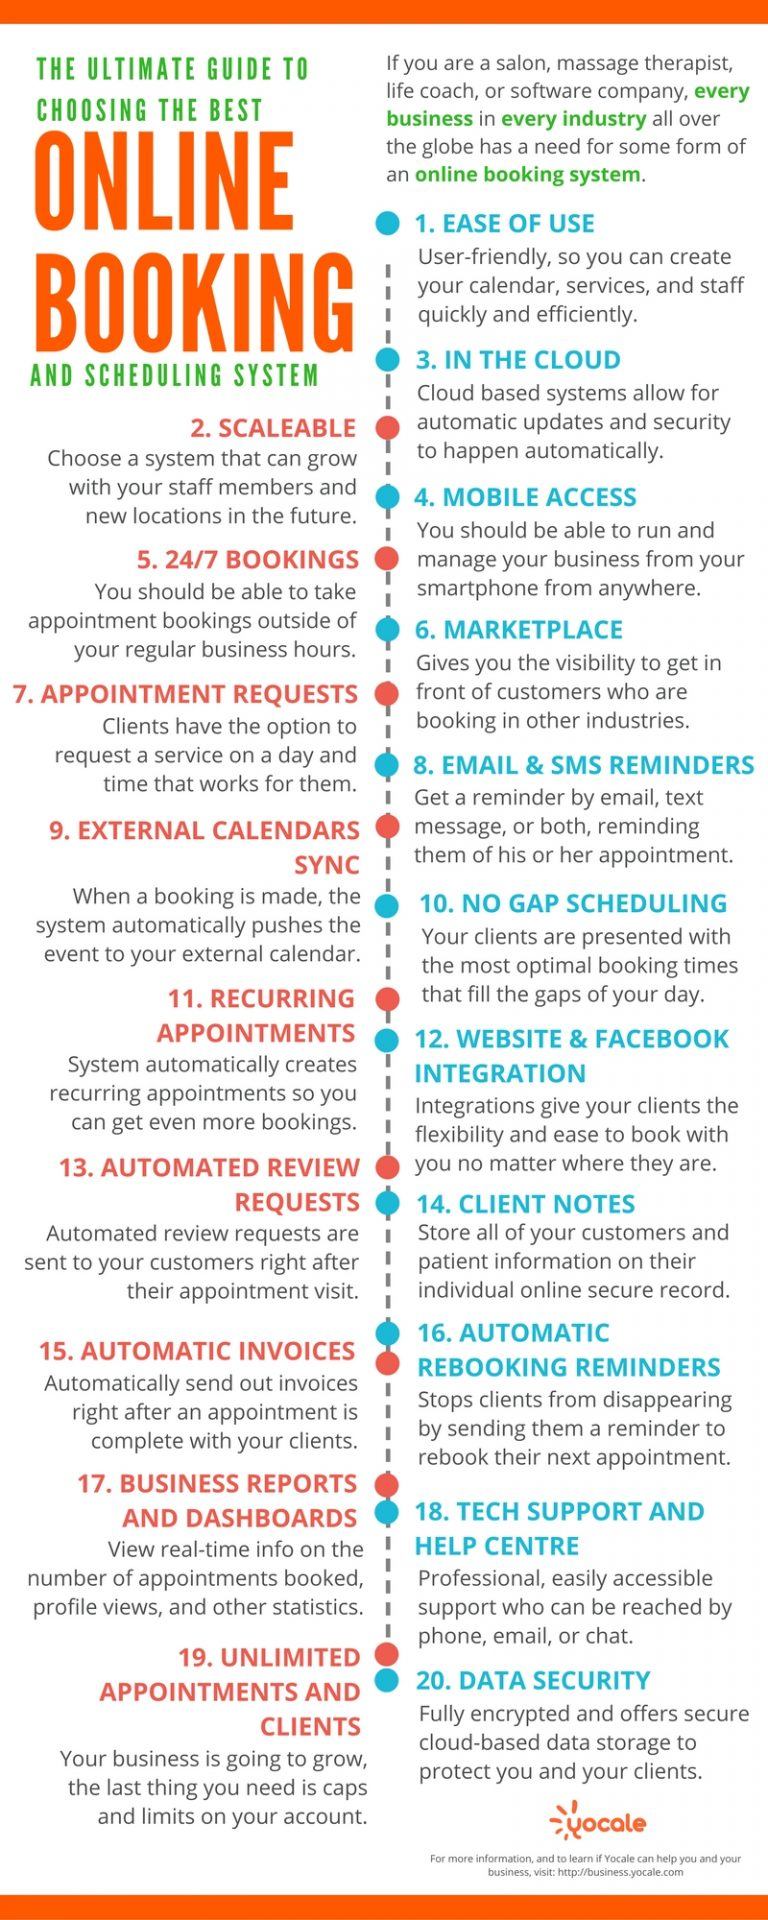 The-Ultimate-Guide-To-Choosing-The-Best-Online-Booking-And-Scheduling-System-infographic-plaza